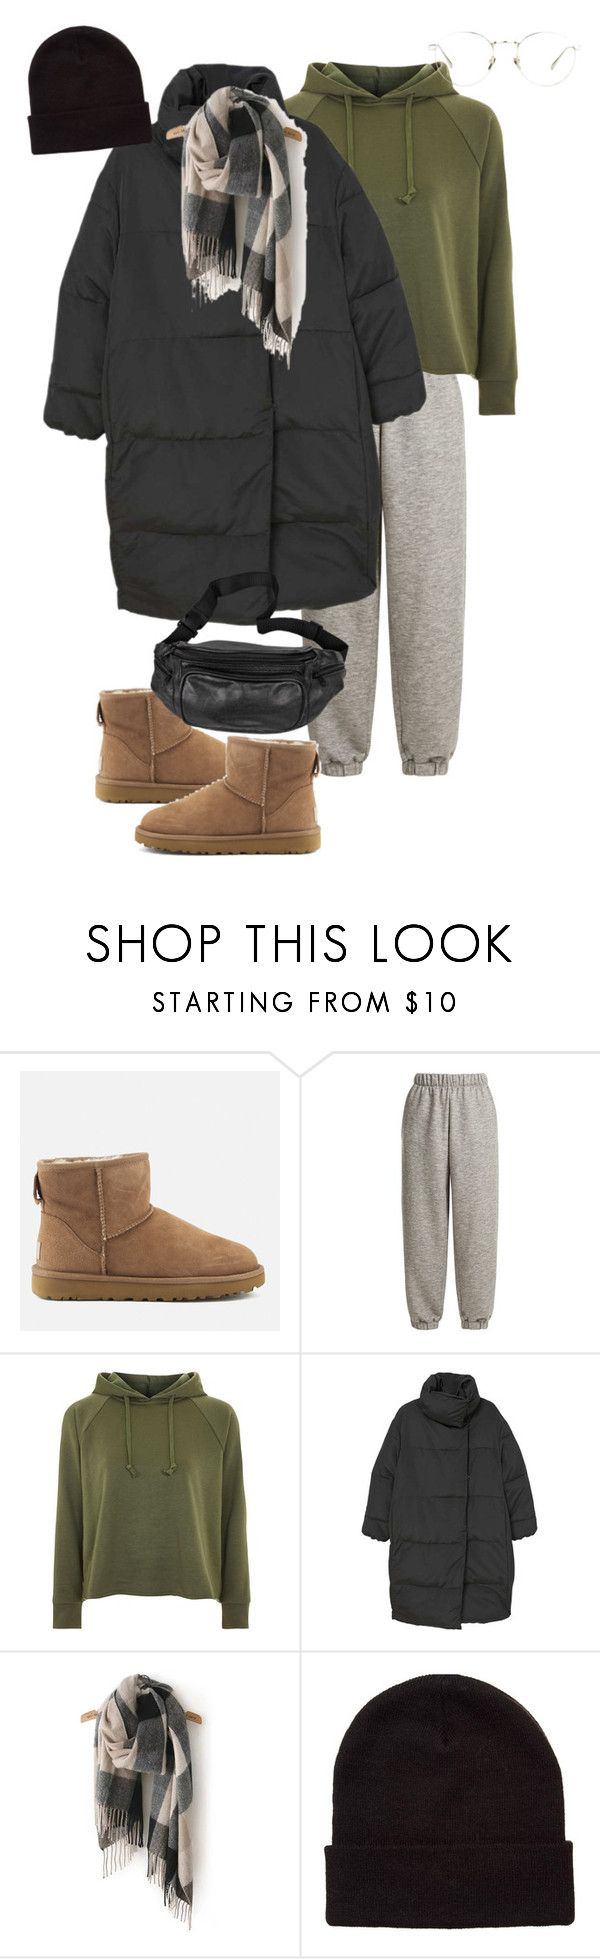 """01.03.2018"" by klorikon00 ❤ liked on Polyvore featuring UGG, Raey, Topshop, MANGO, ASOS and Linda Farrow"